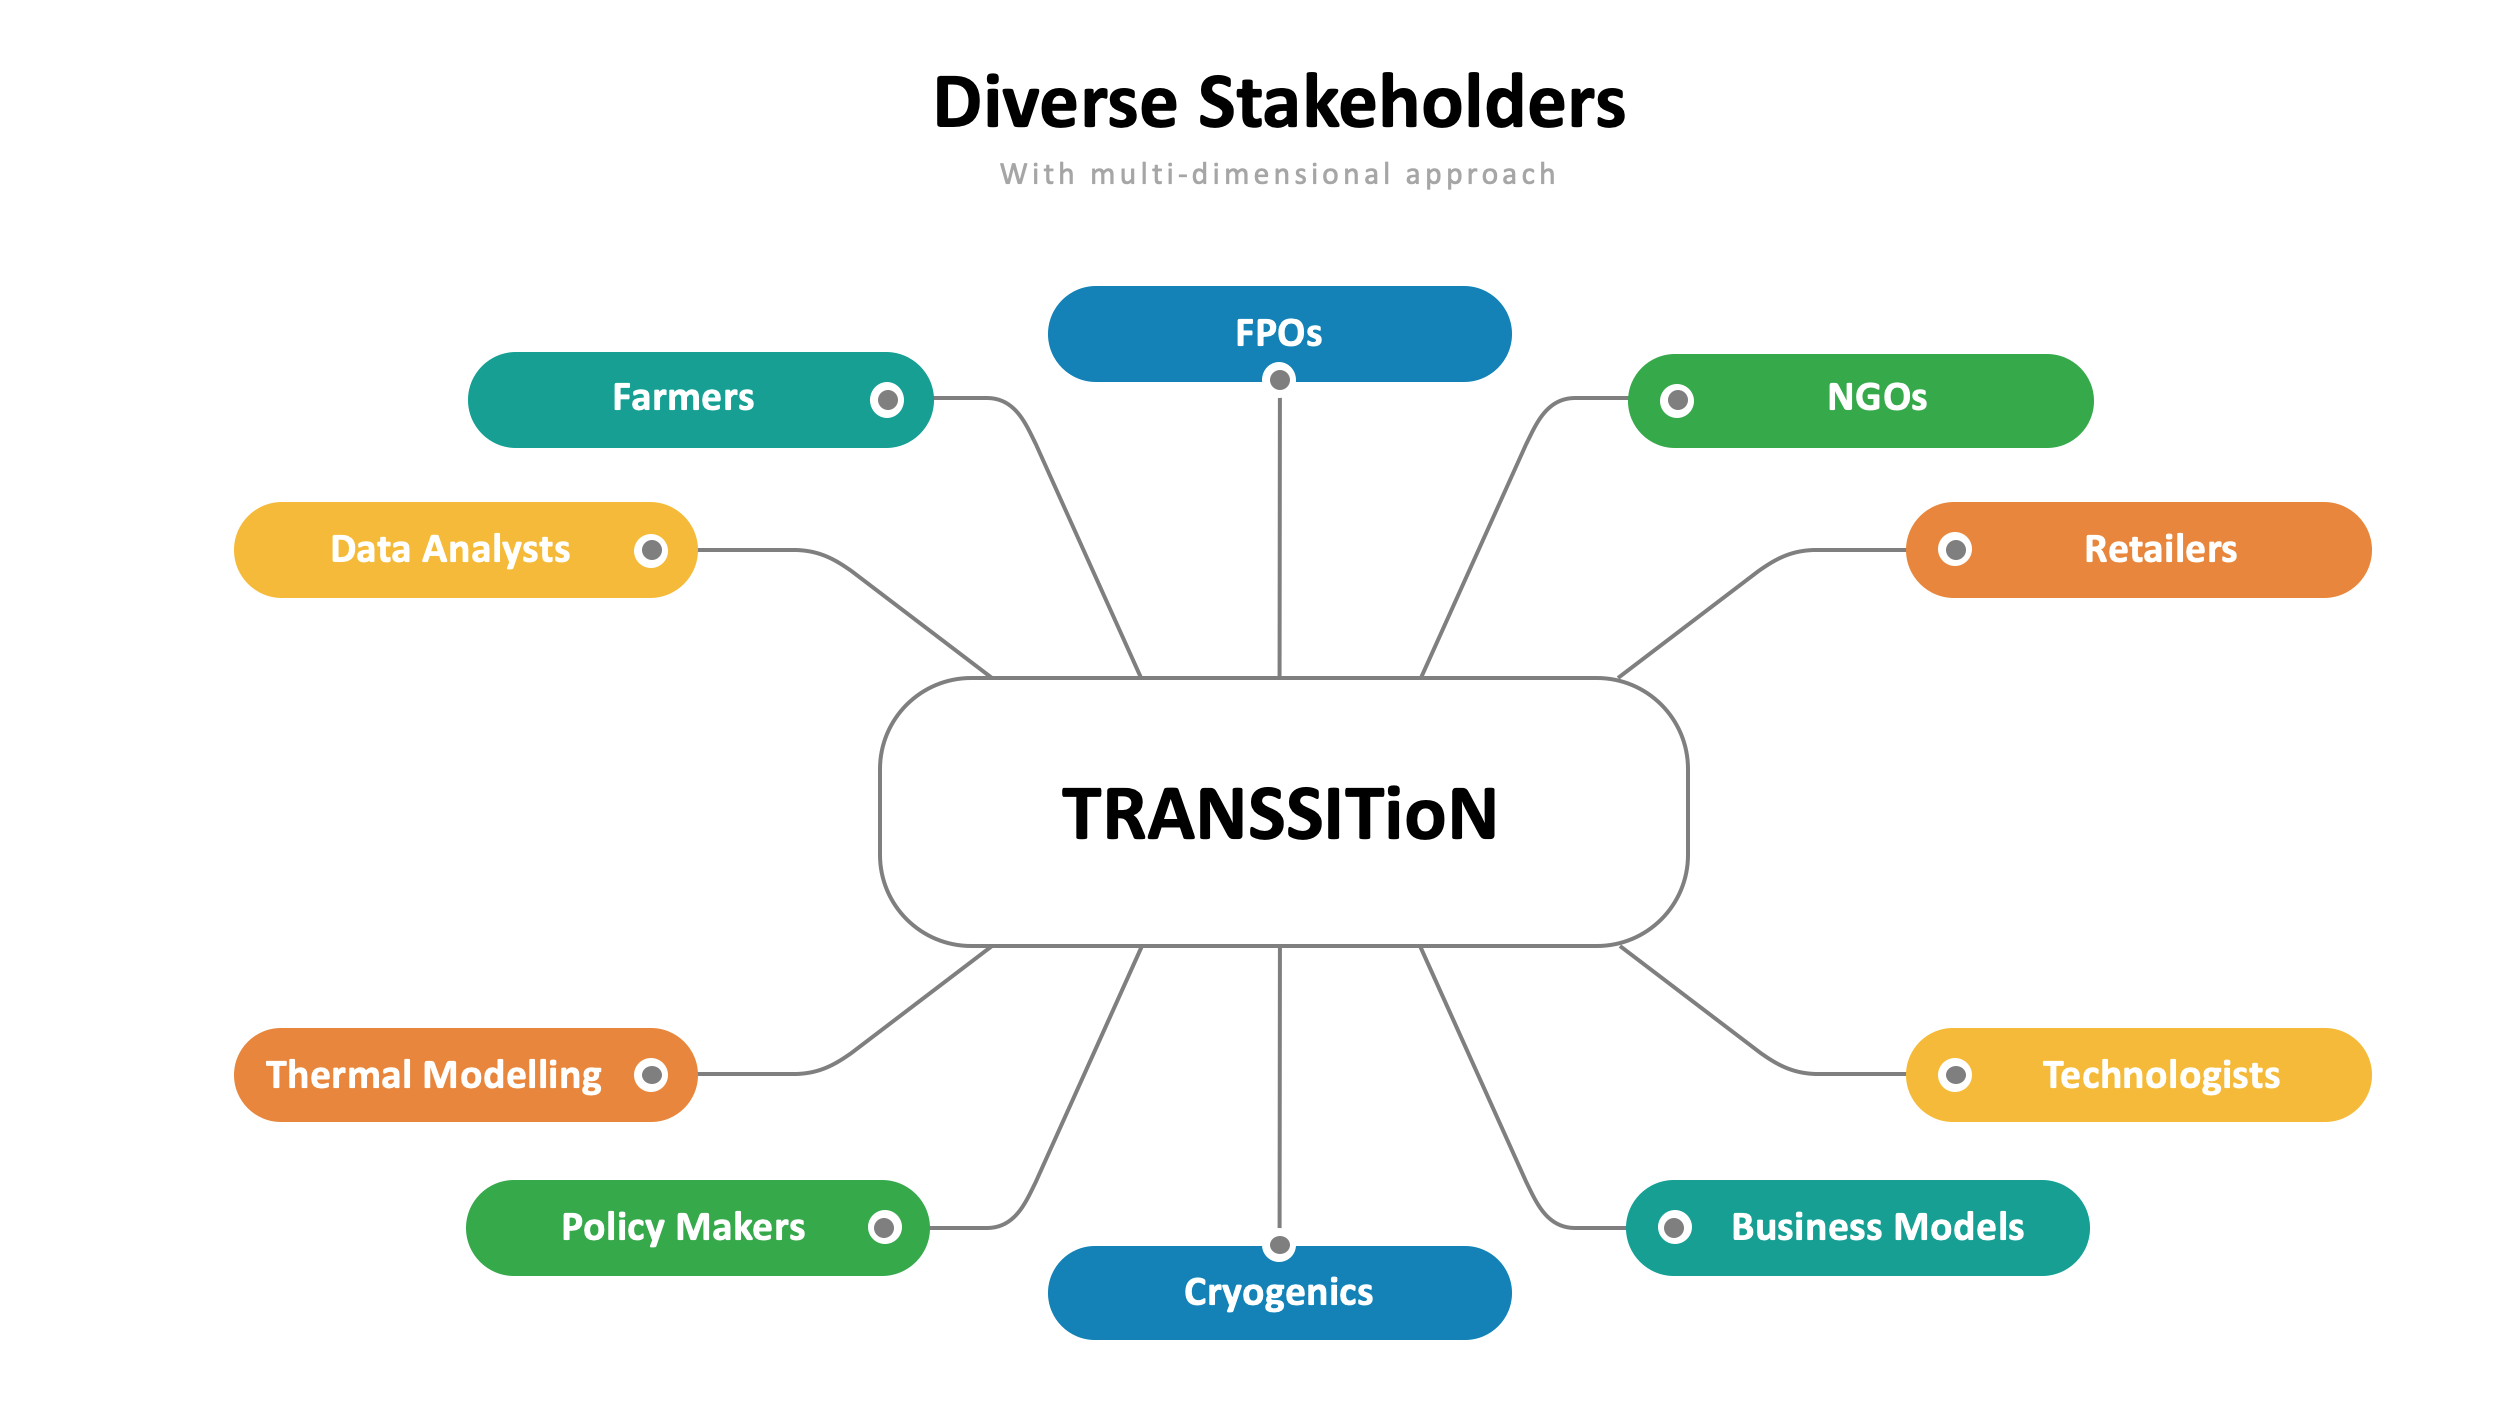 A Multi-dimensional and Multi-stakeholders Approach